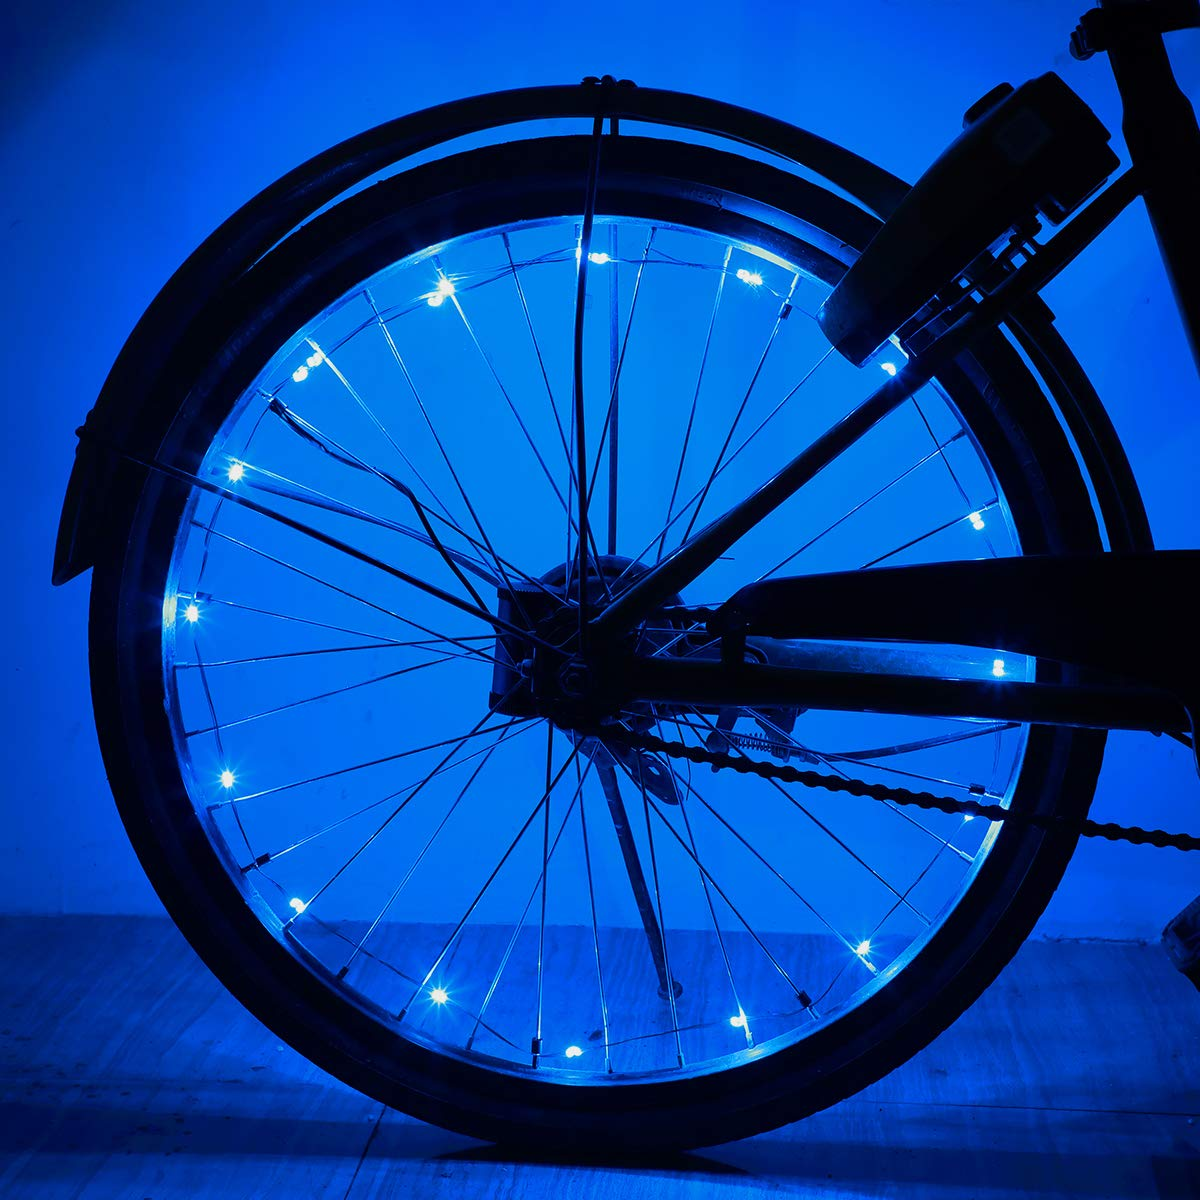 AOYOO Bike Wheel Lights (1 Tire Pack) Waterproof 7 Color Bicycle Tire Accessories You Can Choose The Color You Like 18 Flashing Modes Personality Choice,Safety Spoke Lights